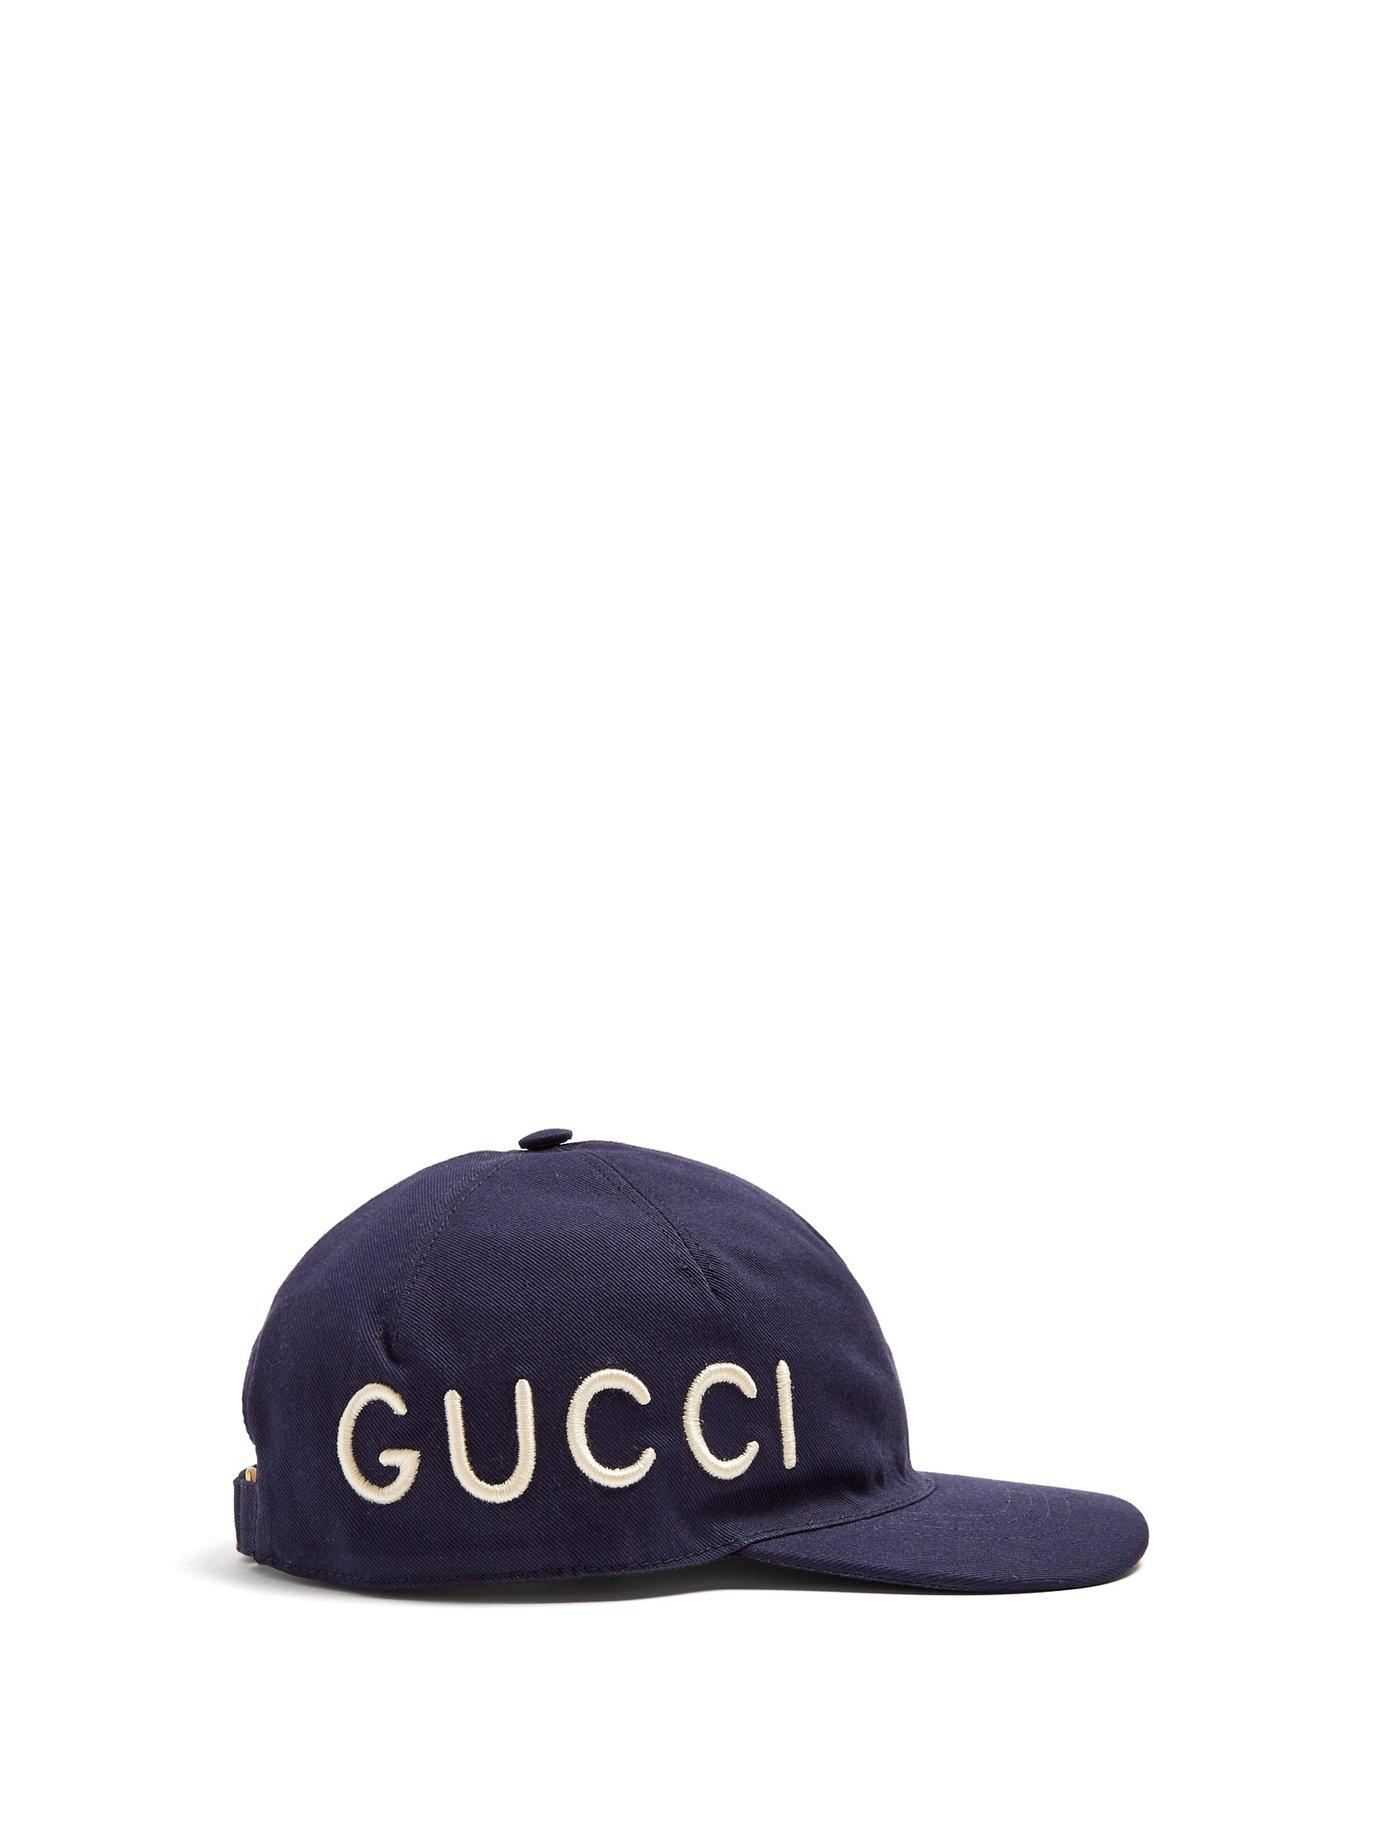 1c58d4f6 Lyst - Gucci Logo Embroidered Cotton Cap in Blue for Men